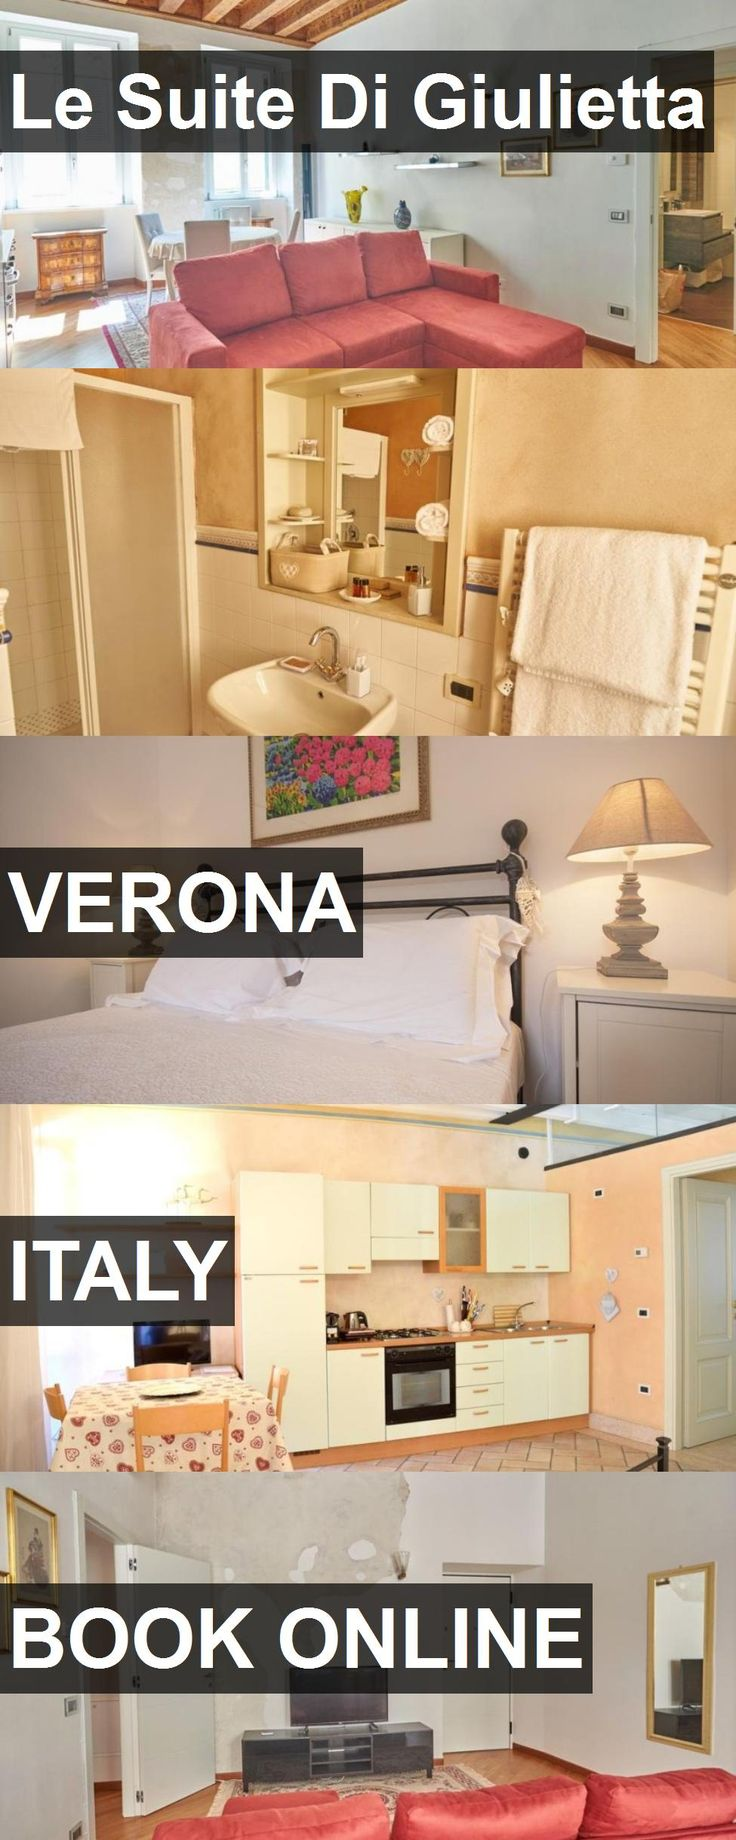 Hotel Le Suite Di Giulietta in Verona, Italy. For more information, photos, reviews and best prices please follow the link. #Italy #Verona #LeSuiteDiGiulietta #hotel #travel #vacation